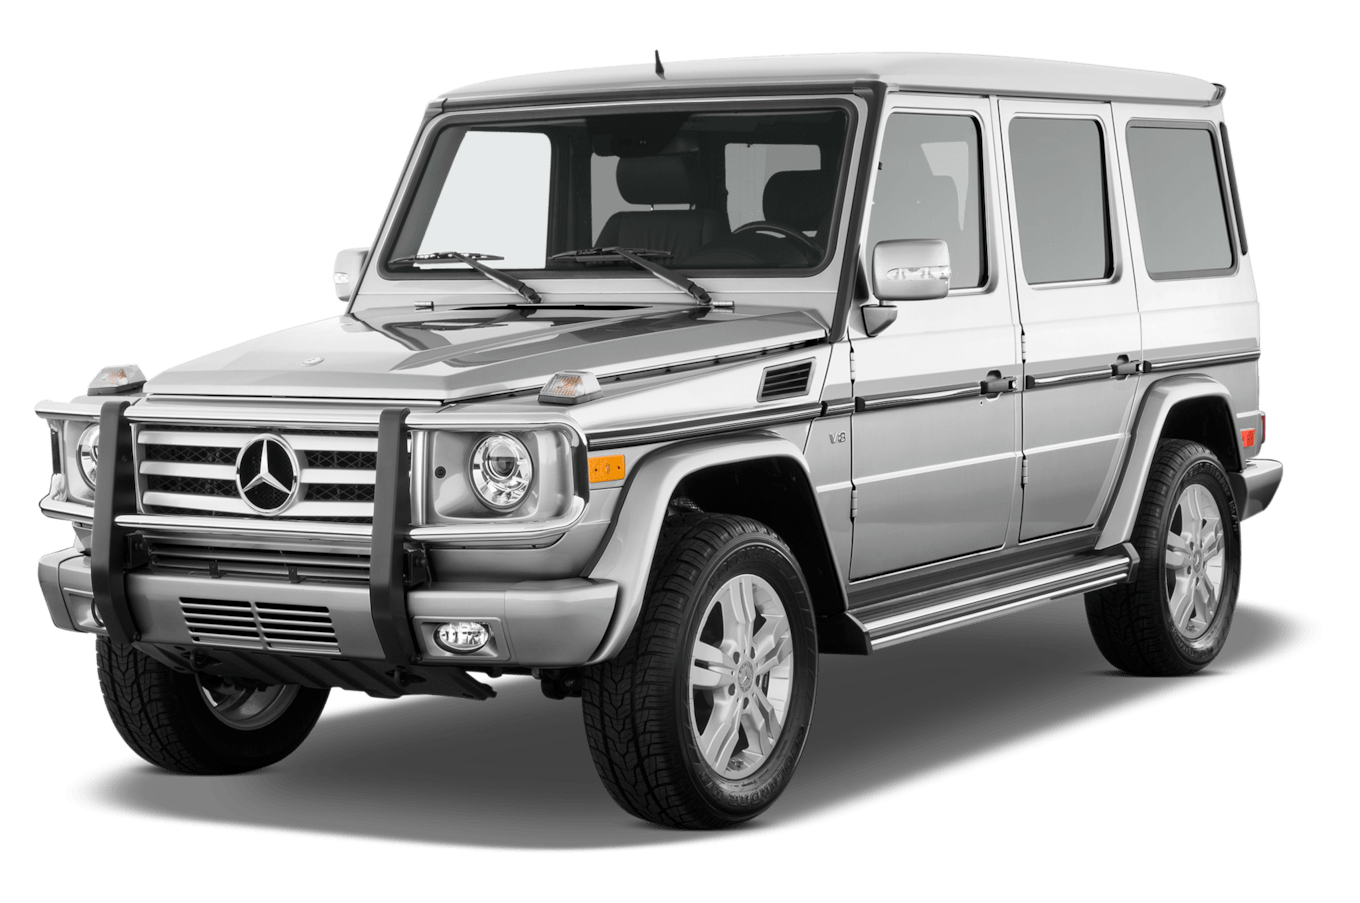 2012 Mercedesbenz Gclass Reviews And Rating  Motor Trend